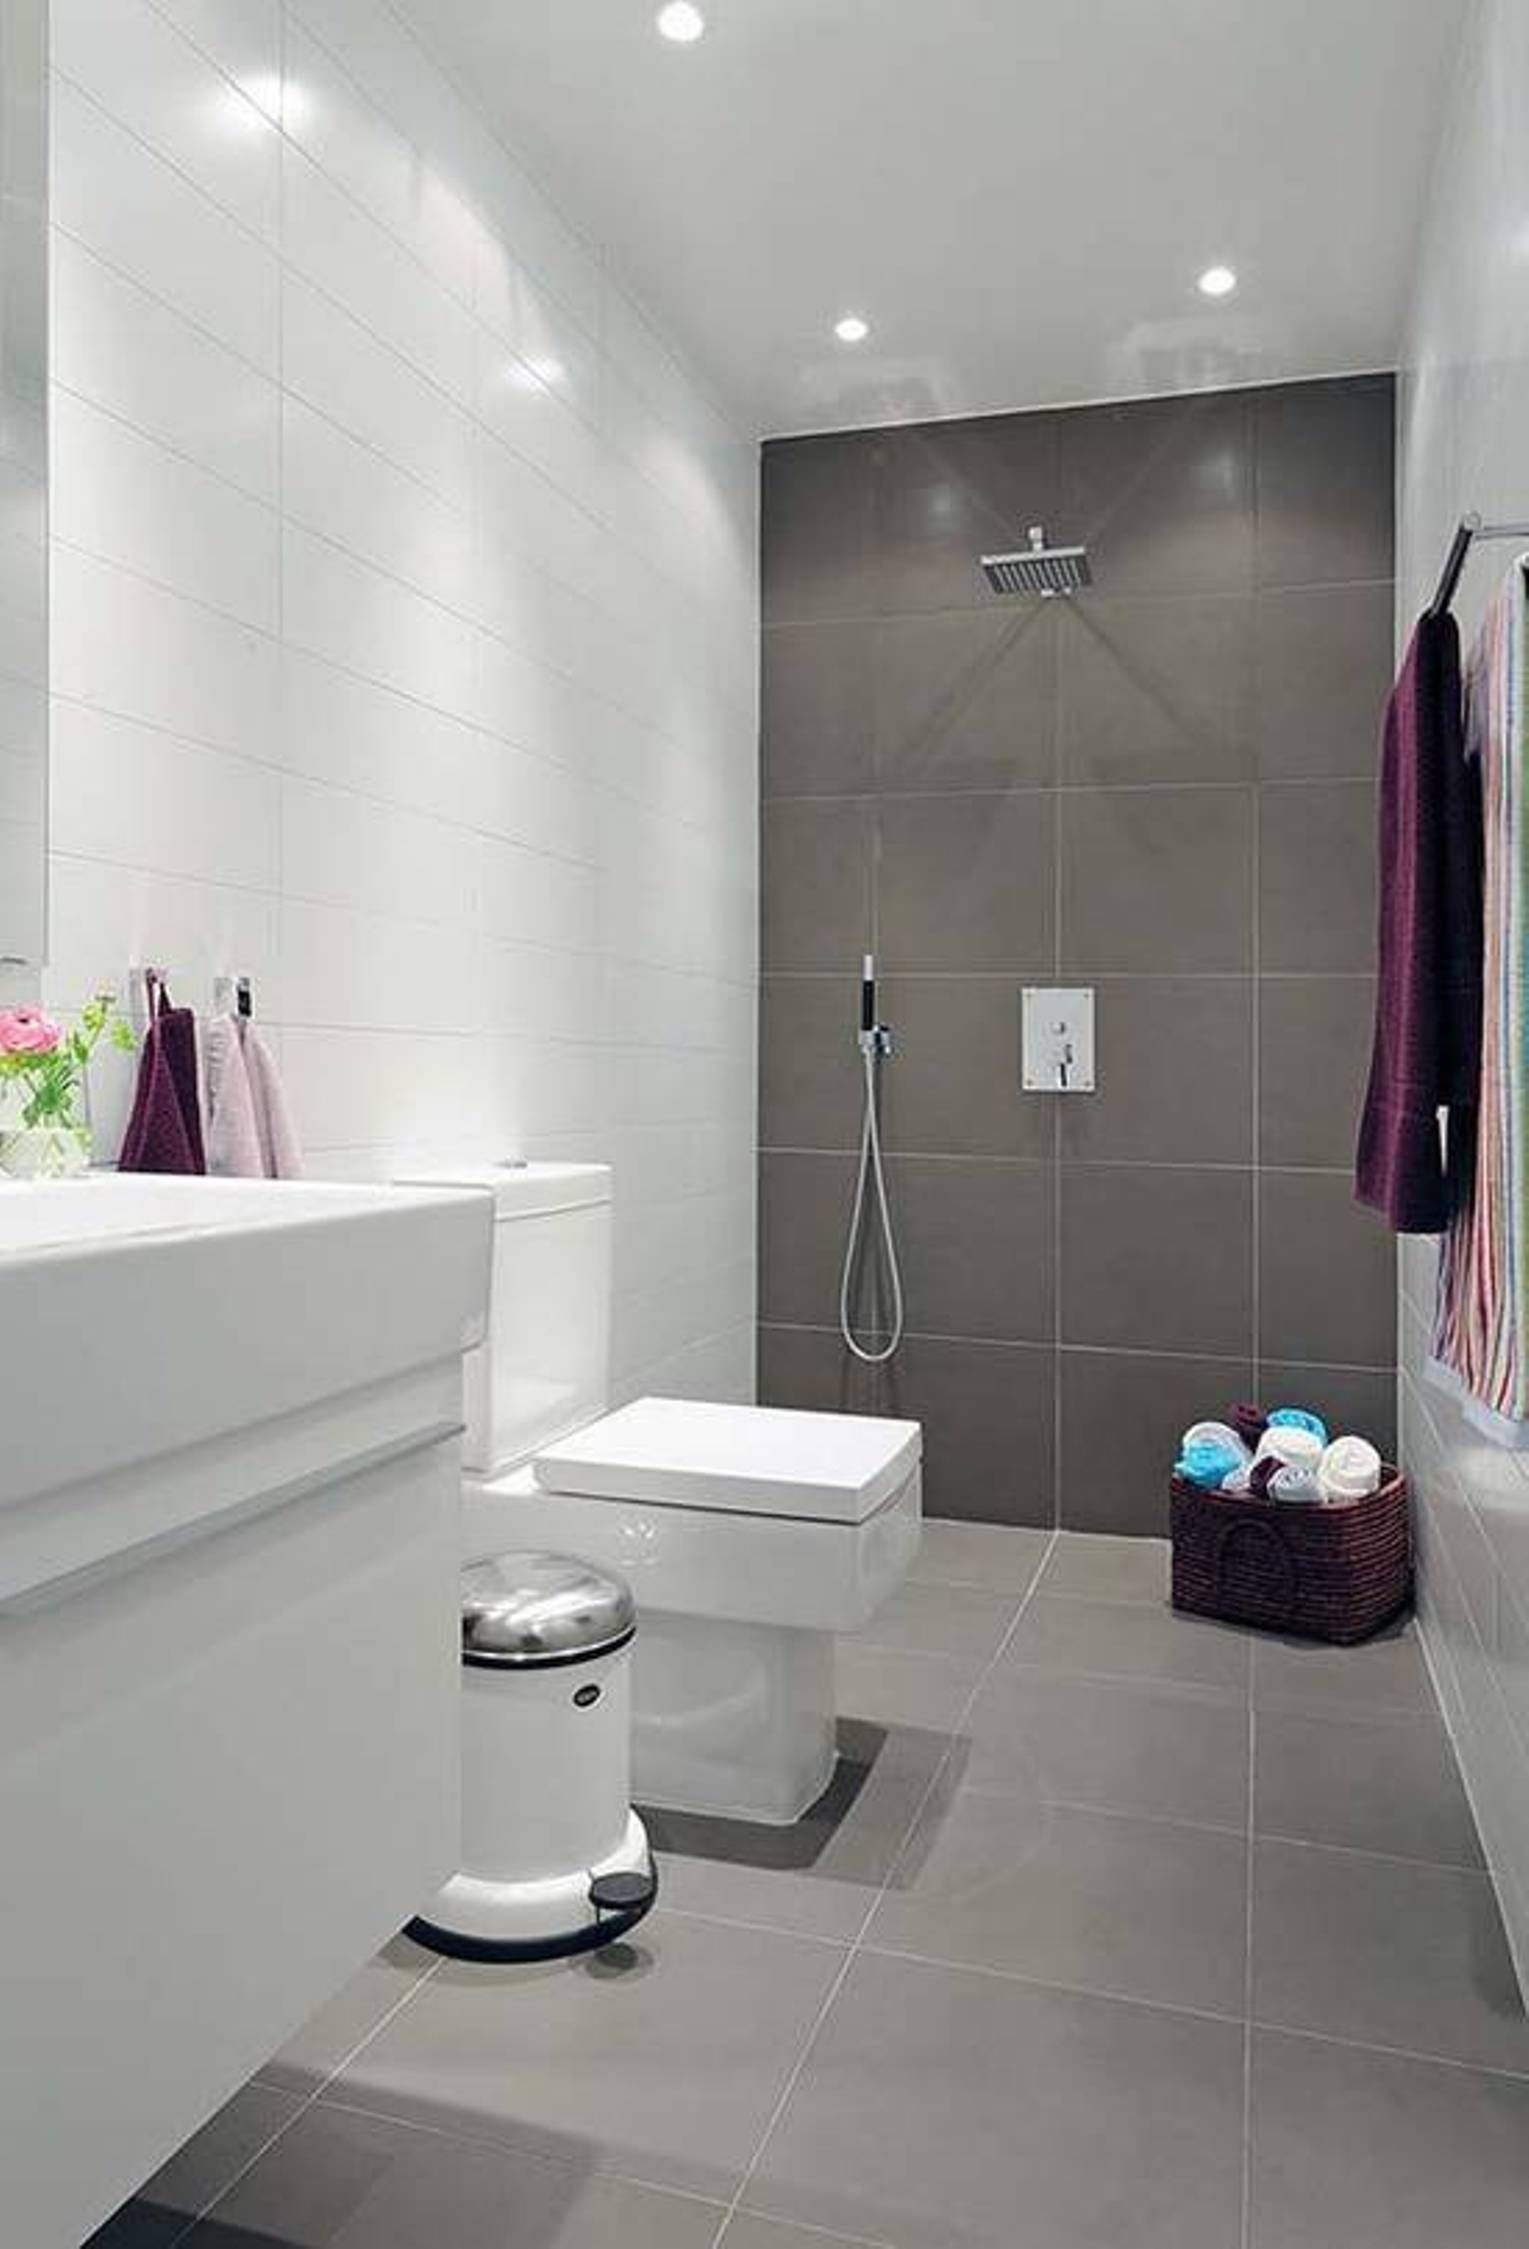 Small bathroom ideas - Lavishly Appointed Gray Small Bathroom Ideas With White Vanity Bath And Gray And White Wall Ceramic